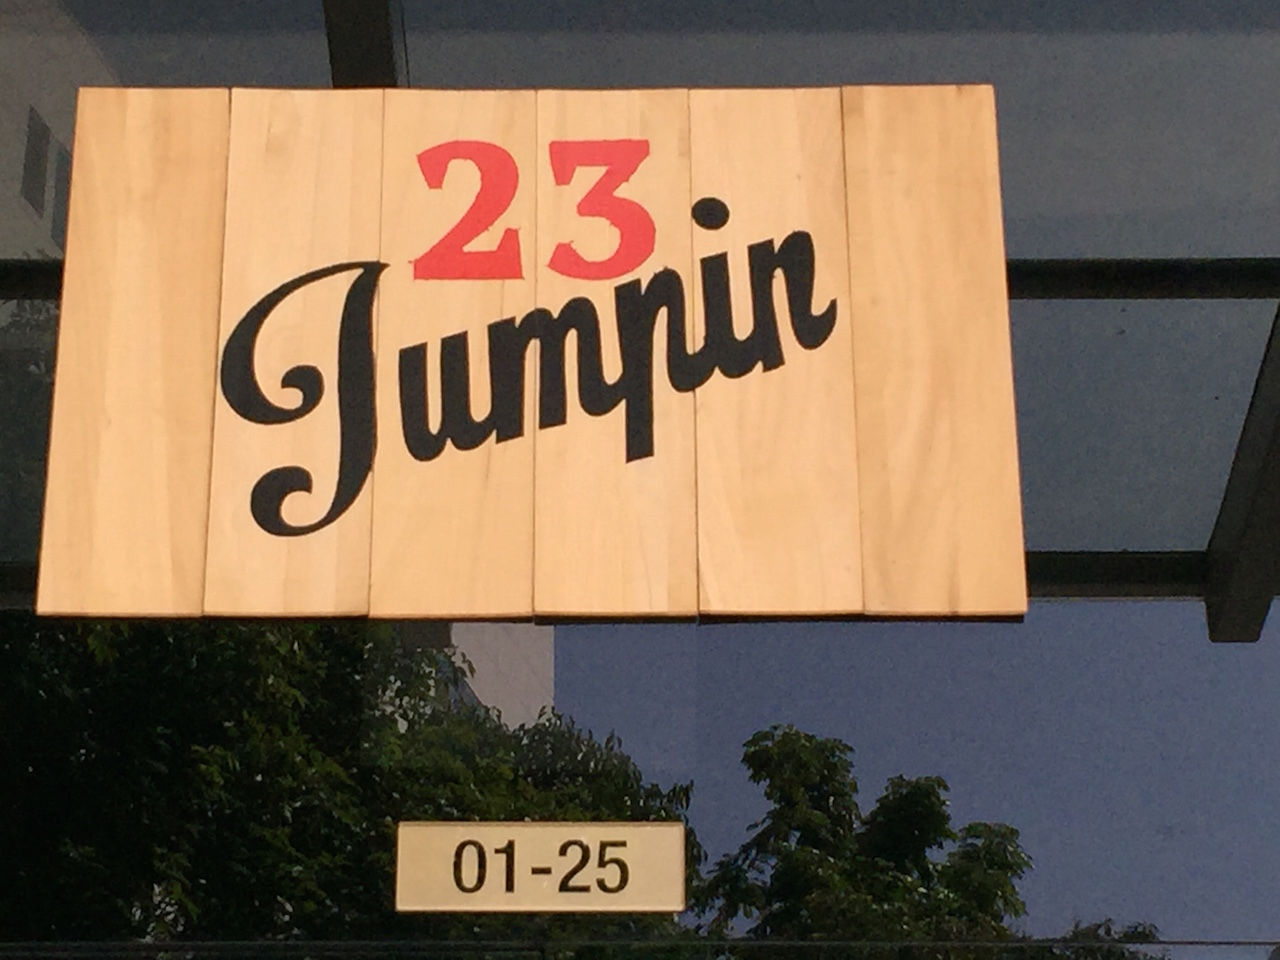 23 Jumpin at 1 Irving Place 01-25